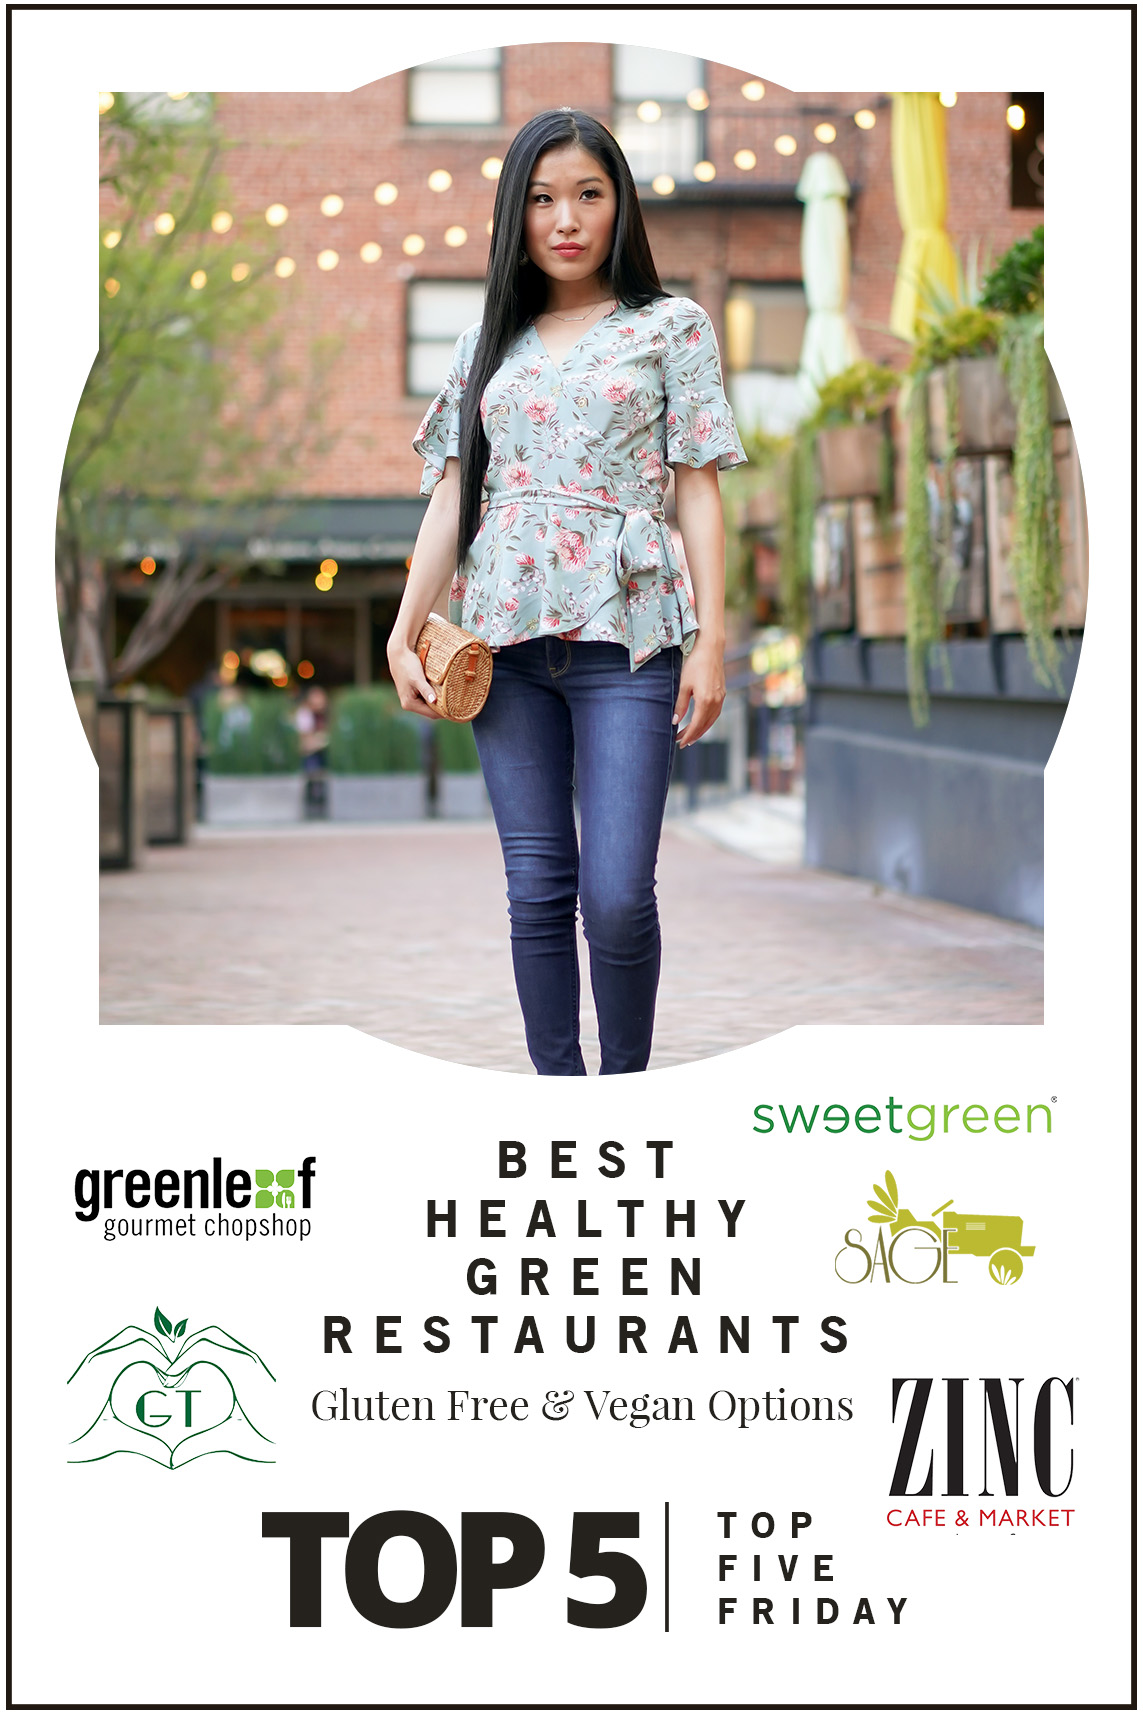 Top Five Friday: Best Healthy Green Restaurants with Gluten Free and Vegan Options